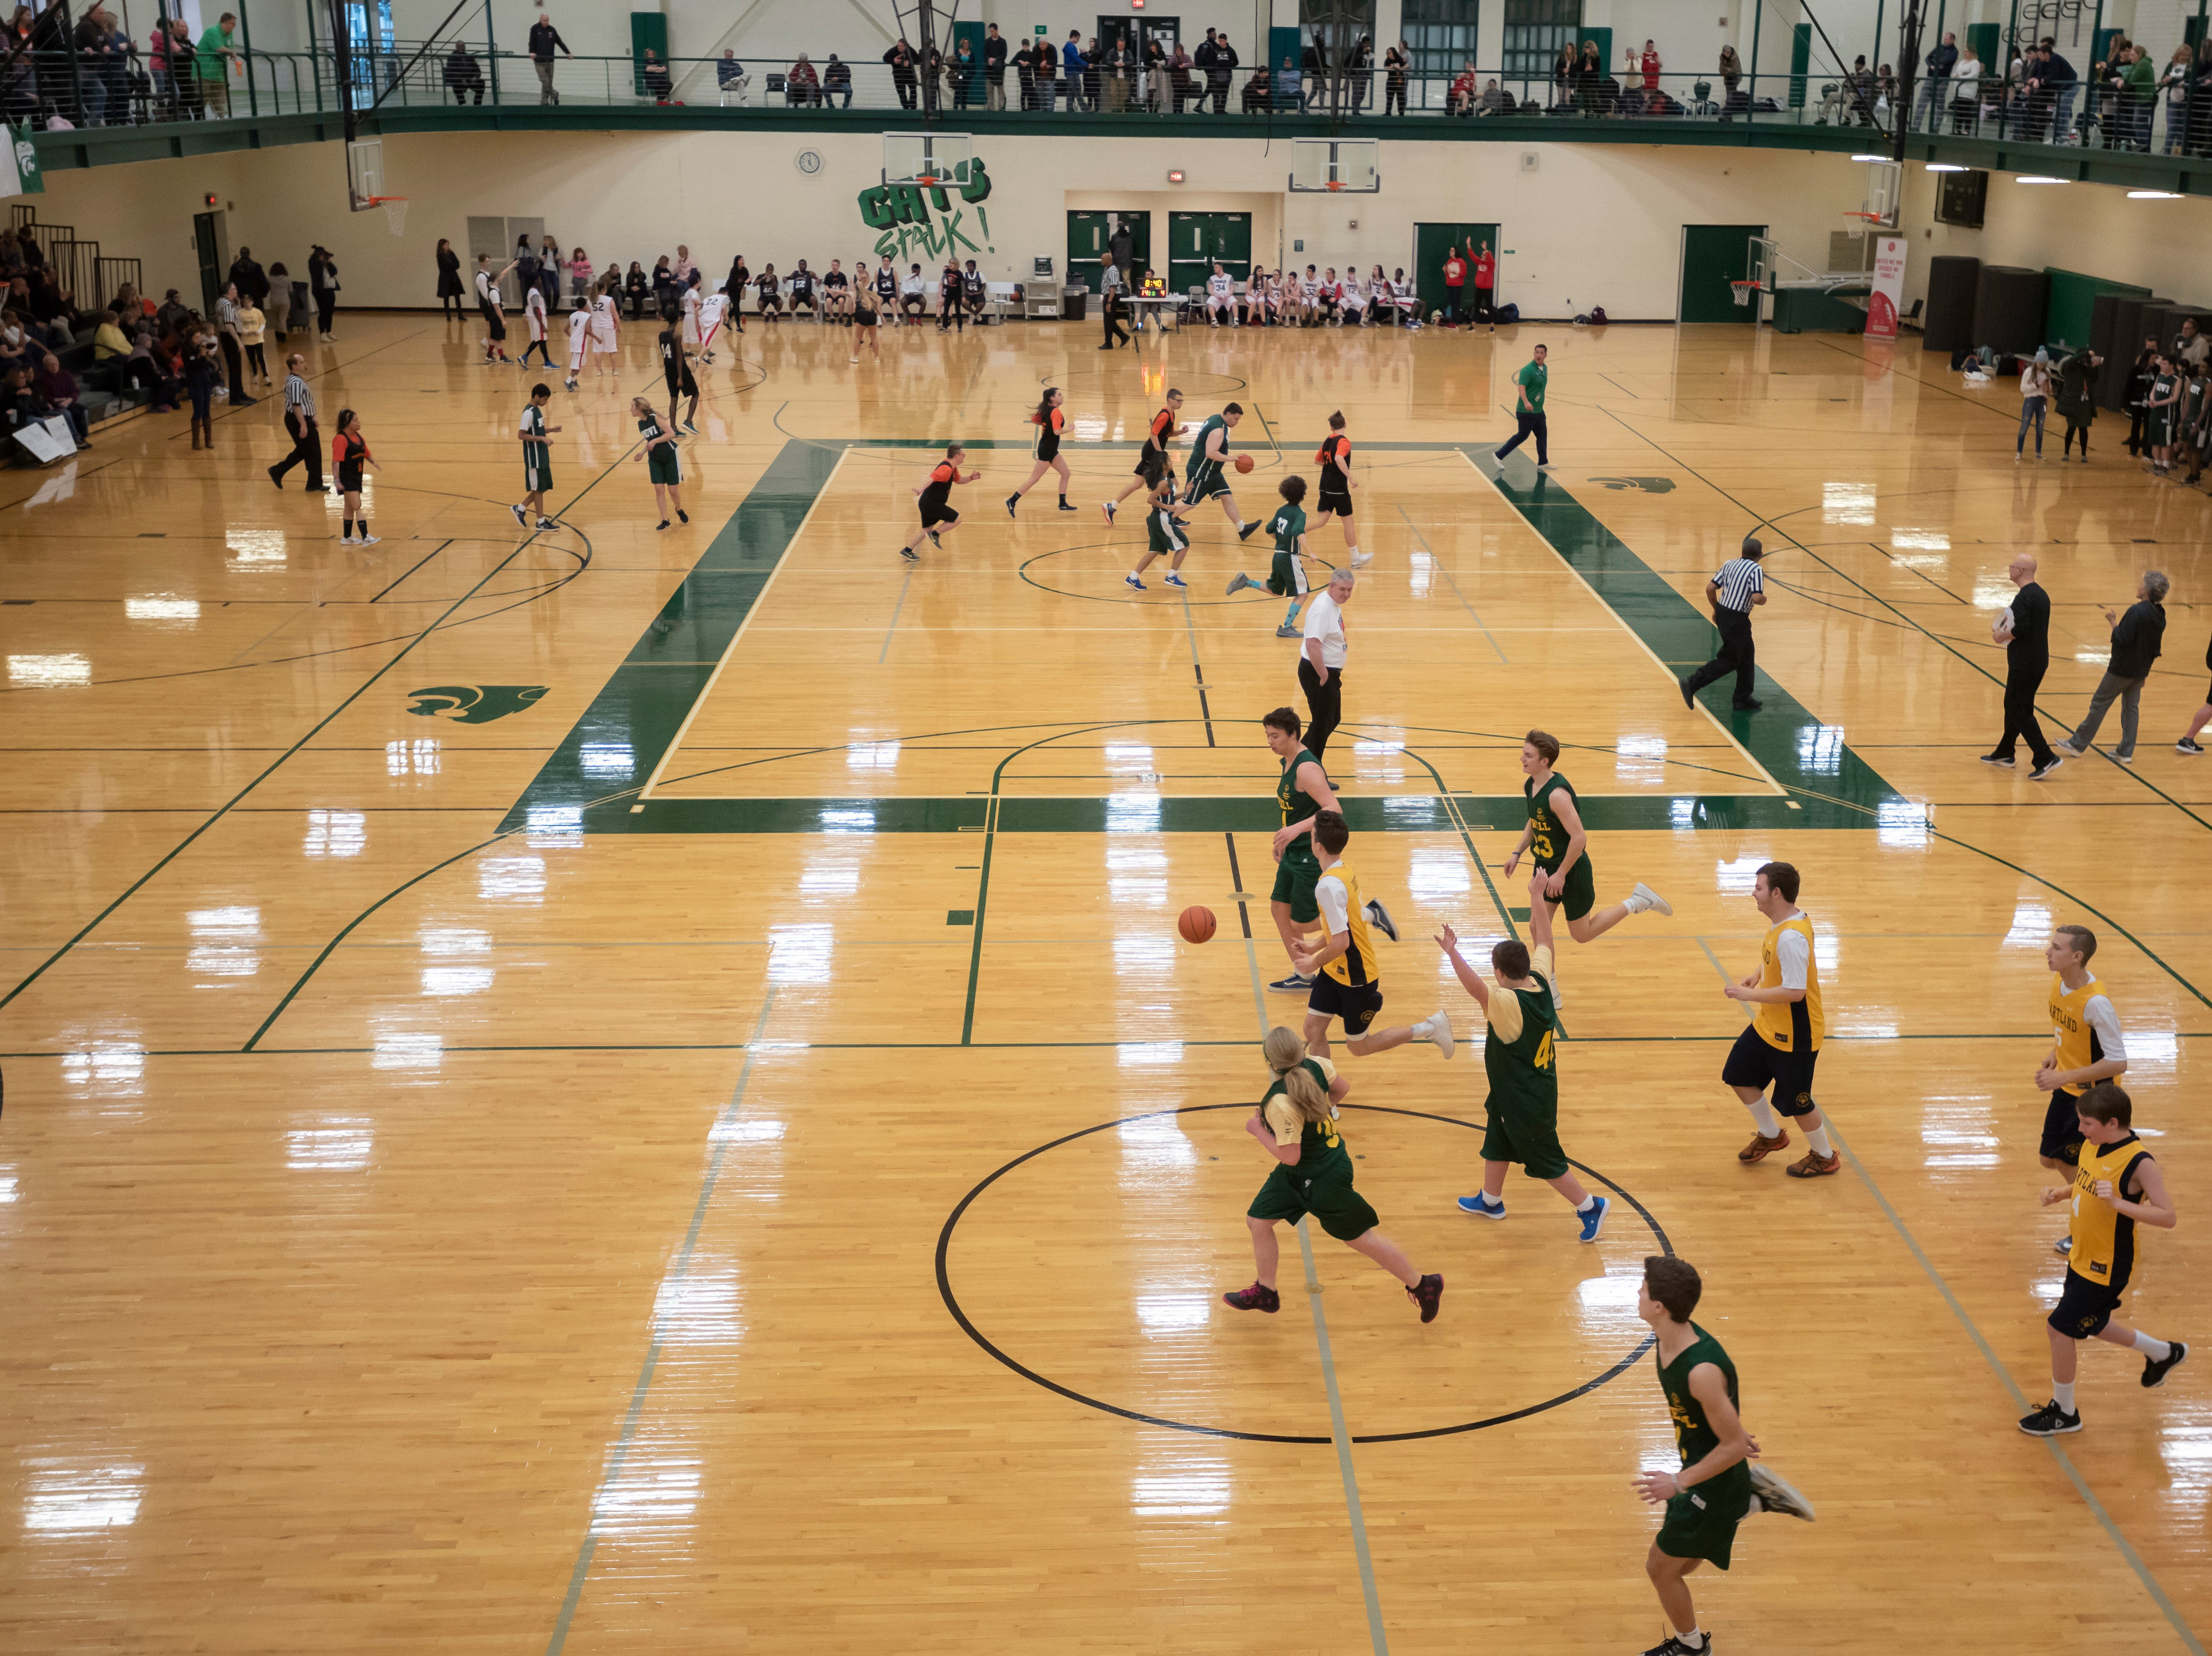 Multiple games take place during the tournament.